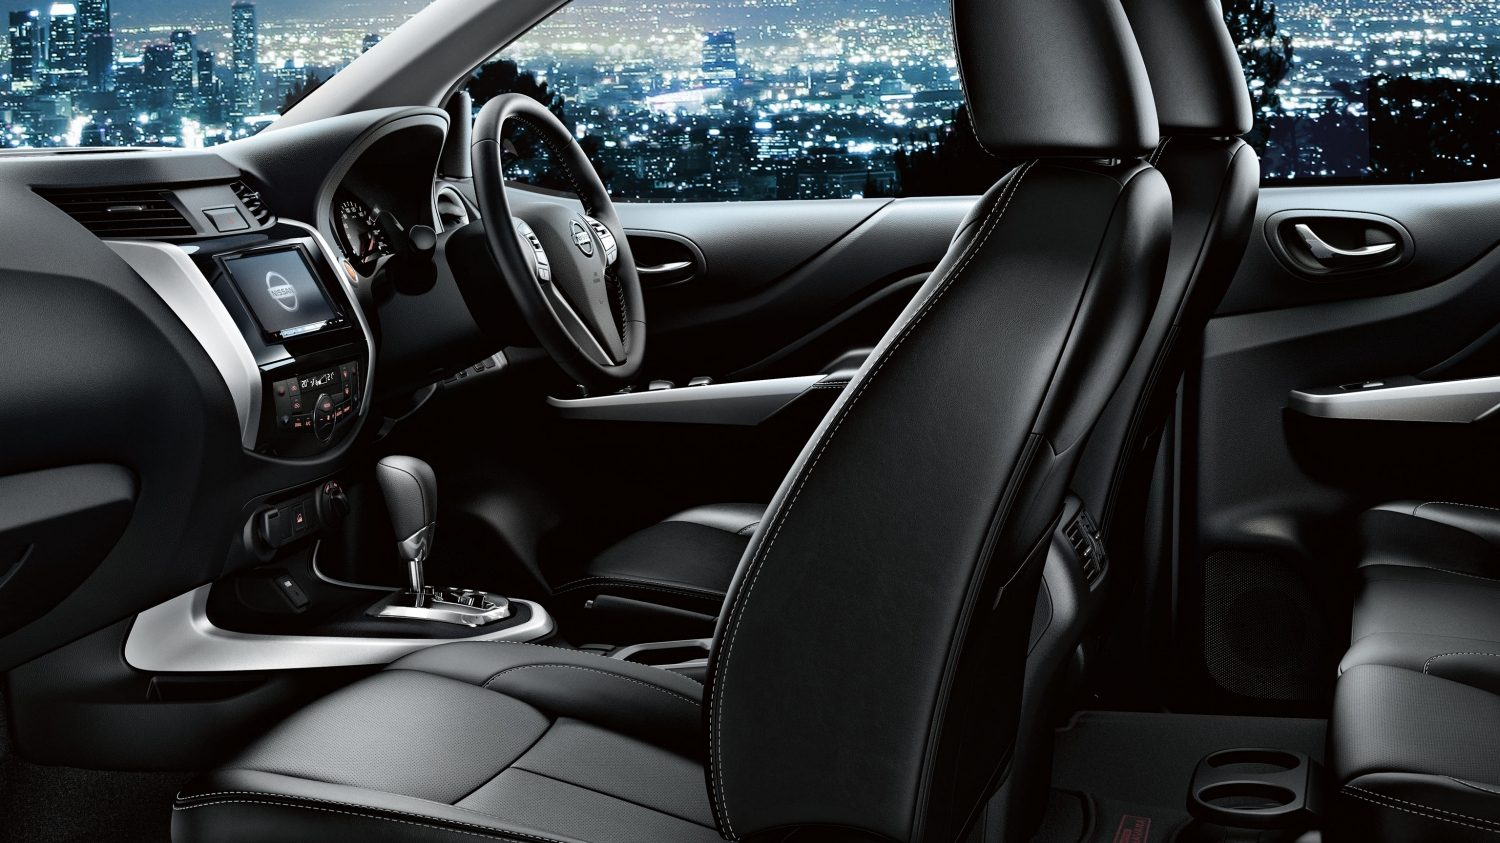 Nissan Navara interior profile in front of cityscape